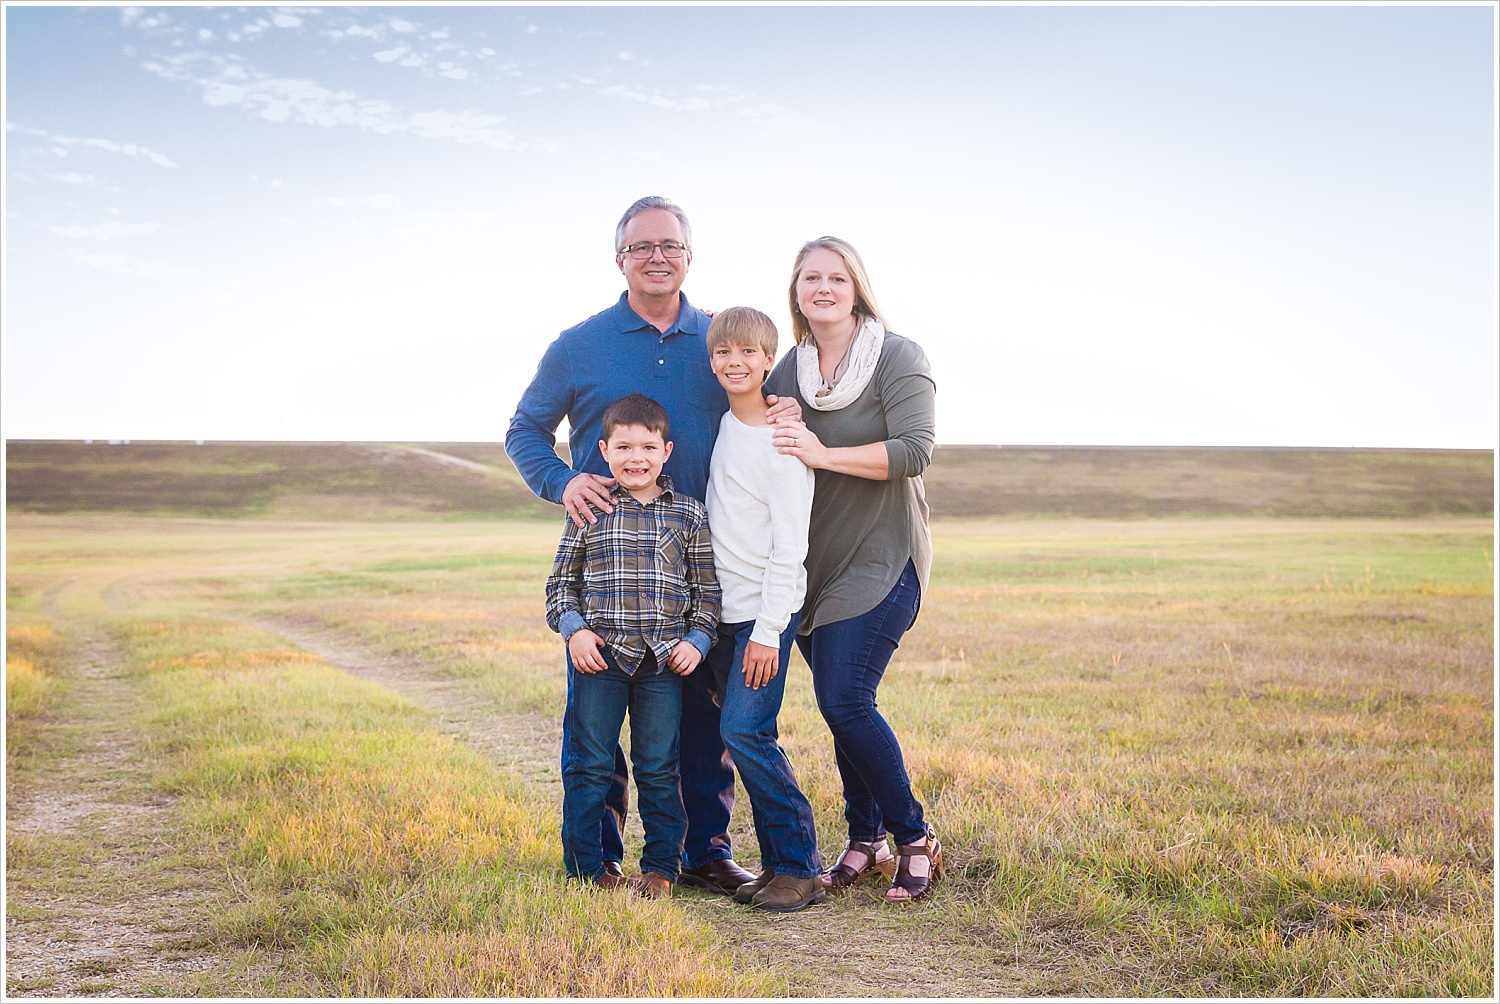 A family poses in a large field with an expansive Texas sky behind them in Waco, Texas - Jason & Melaina Photography - www.jasonandmelaina.com